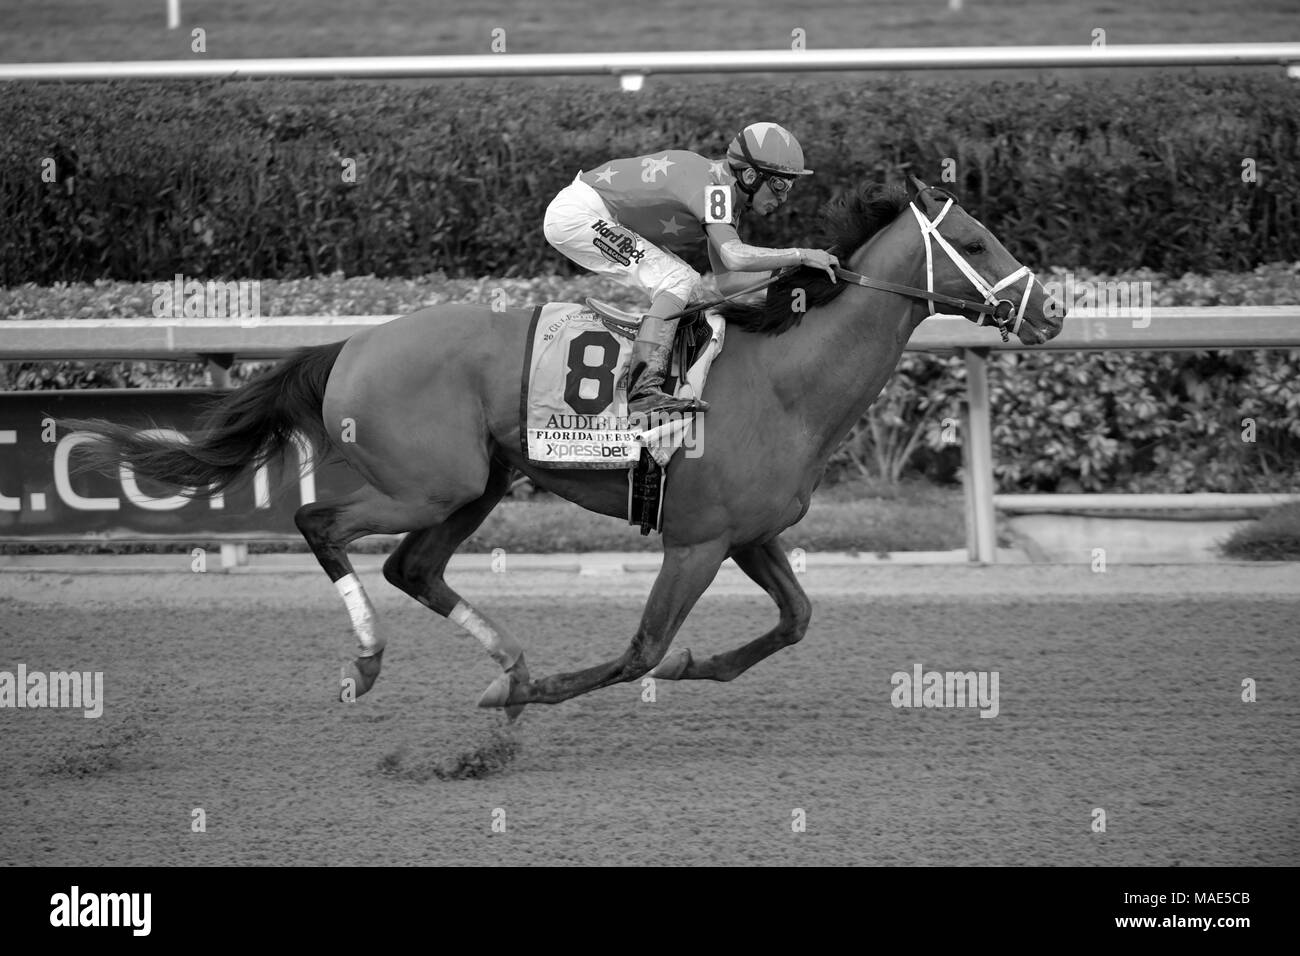 HALLANDALE, FL - MARCH 31: Audible ran away in the stretch to win the Grade 1 Florida Derby with Jockey John Velazquez. It marks the fifth Florida Derby win for trainer Todd Pletcher, who won both the Florida and Kentucky Derbies last year with Always Dreaming at Gulfstream Park on March 31, 2018 in Hallandale, Florida   People:  Audible, John Velazquez Credit: Storms Media Group/Alamy Live News - Stock Image